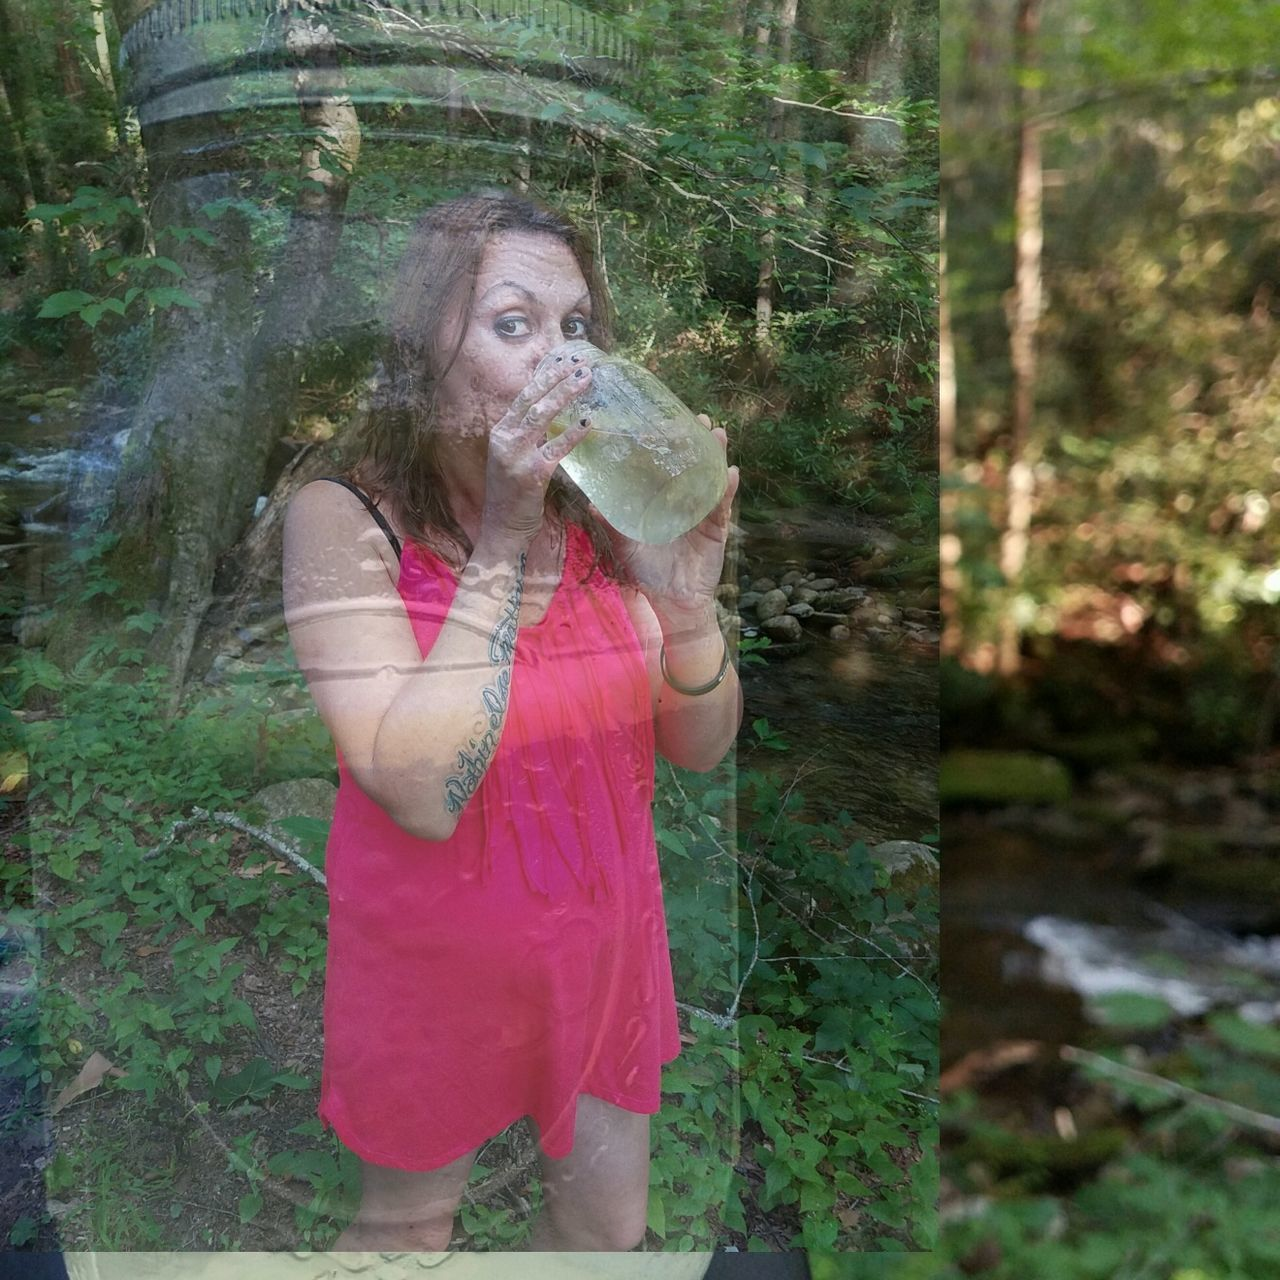 drinking, one person, refreshment, holding, outdoors, day, young adult, grass, standing, water, drink, young women, forest, real people, tree, one young woman only, nature, blond hair, freshness, people, adult, adults only